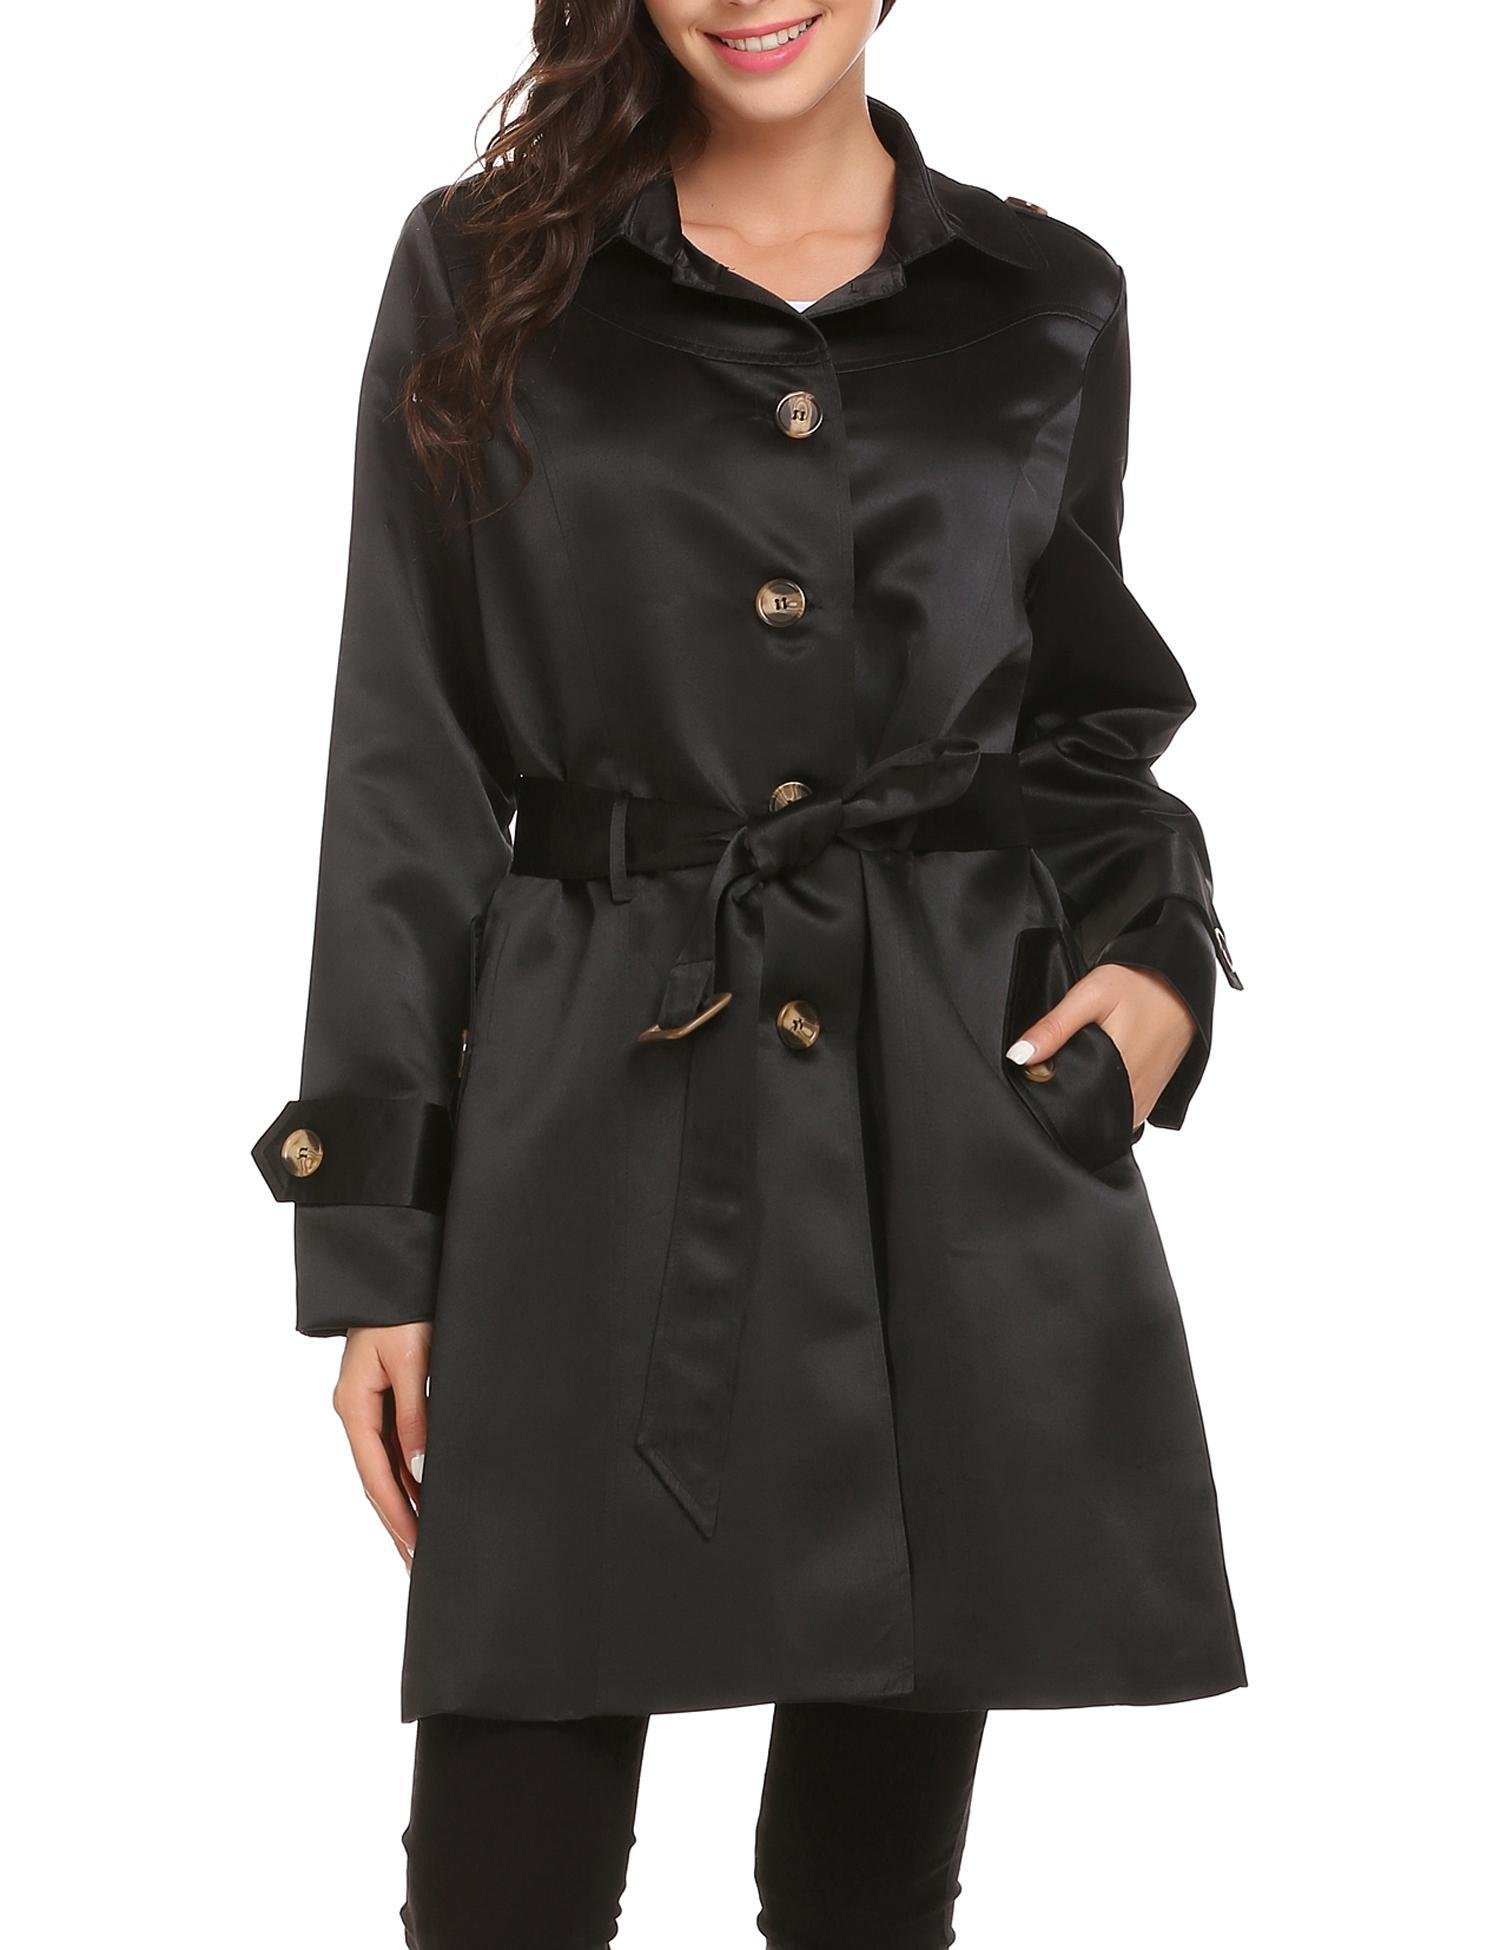 Mofavor Women's Belted Single Breasted Elegant Long Trench Coat With Pockets